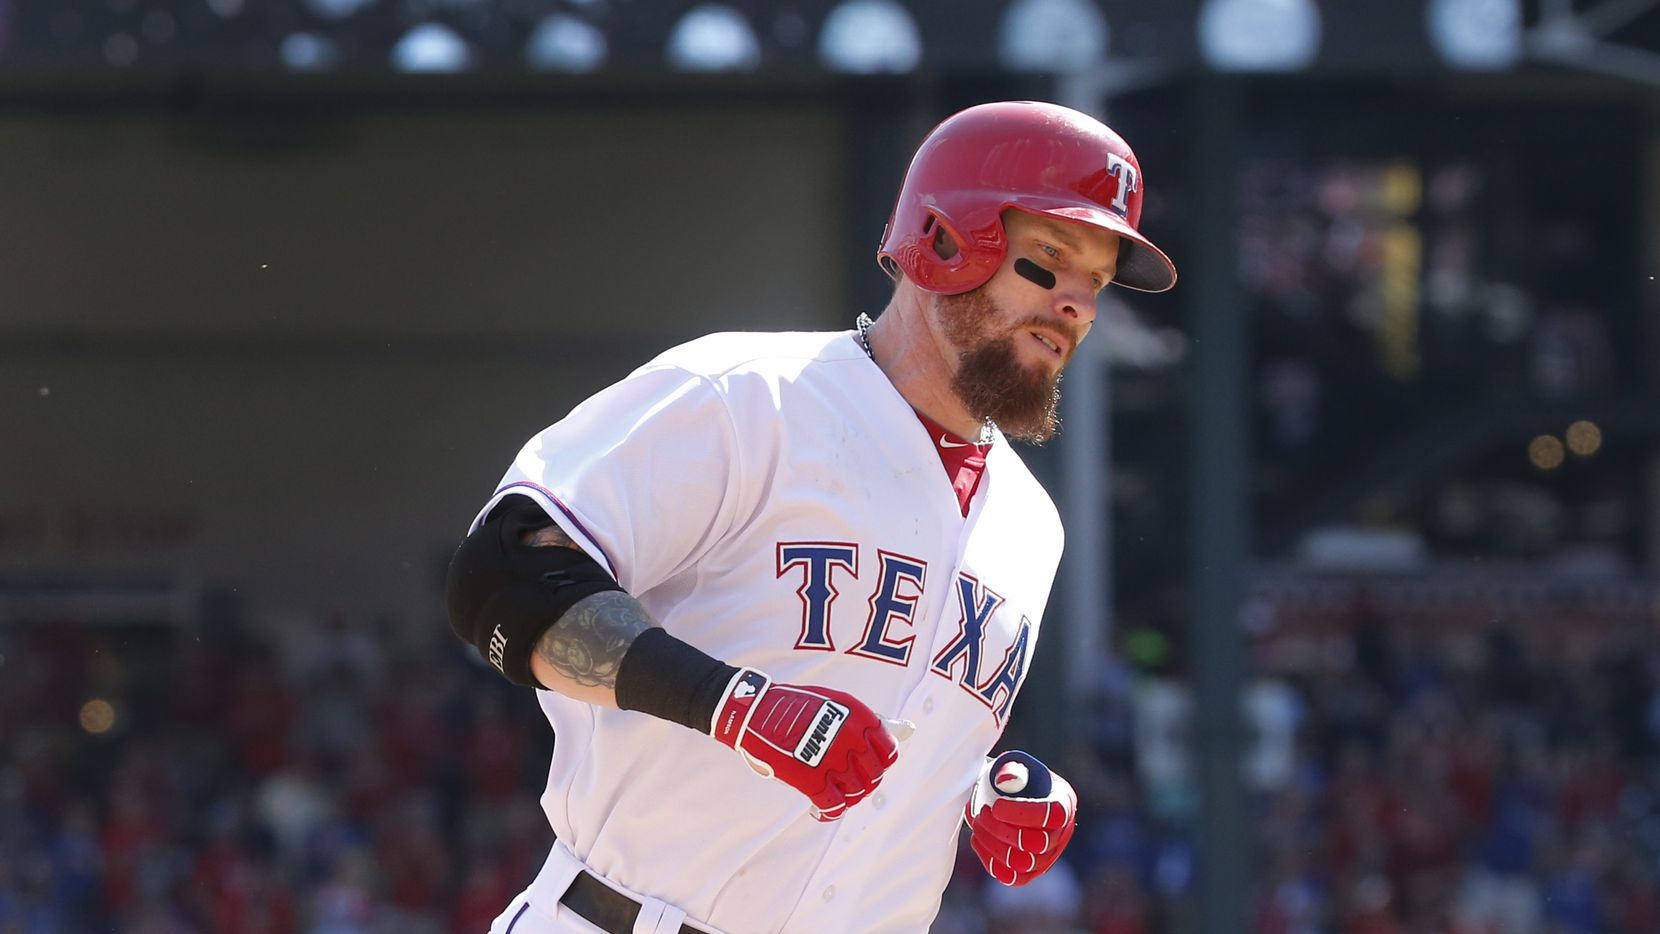 Texas Rangers left fielder Josh Hamilton is pictured during the Los Angeles Angels vs. Texas Rangers game at Globe Life Park in Arlington on Oct. 3, 2015.